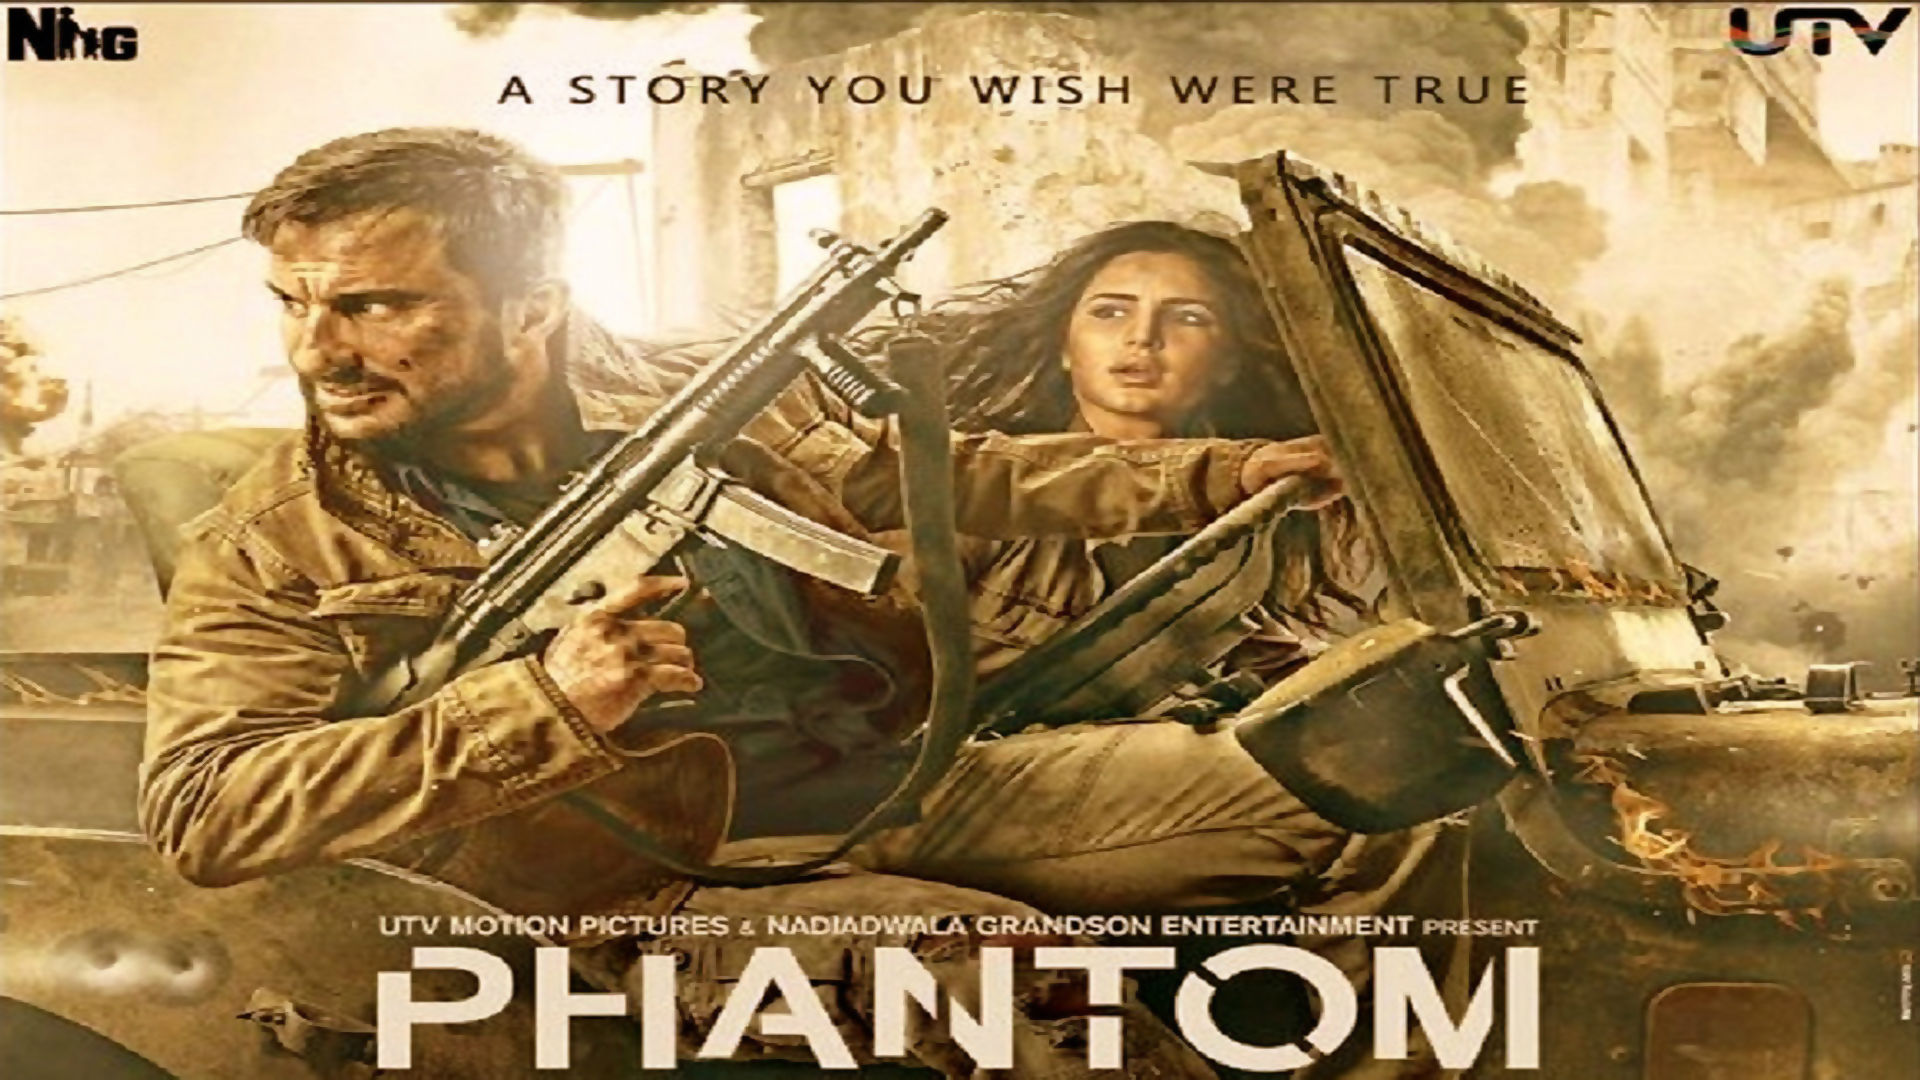 Movie Posters 2015: Top 5 Flop Films Of Bollywood In 2015